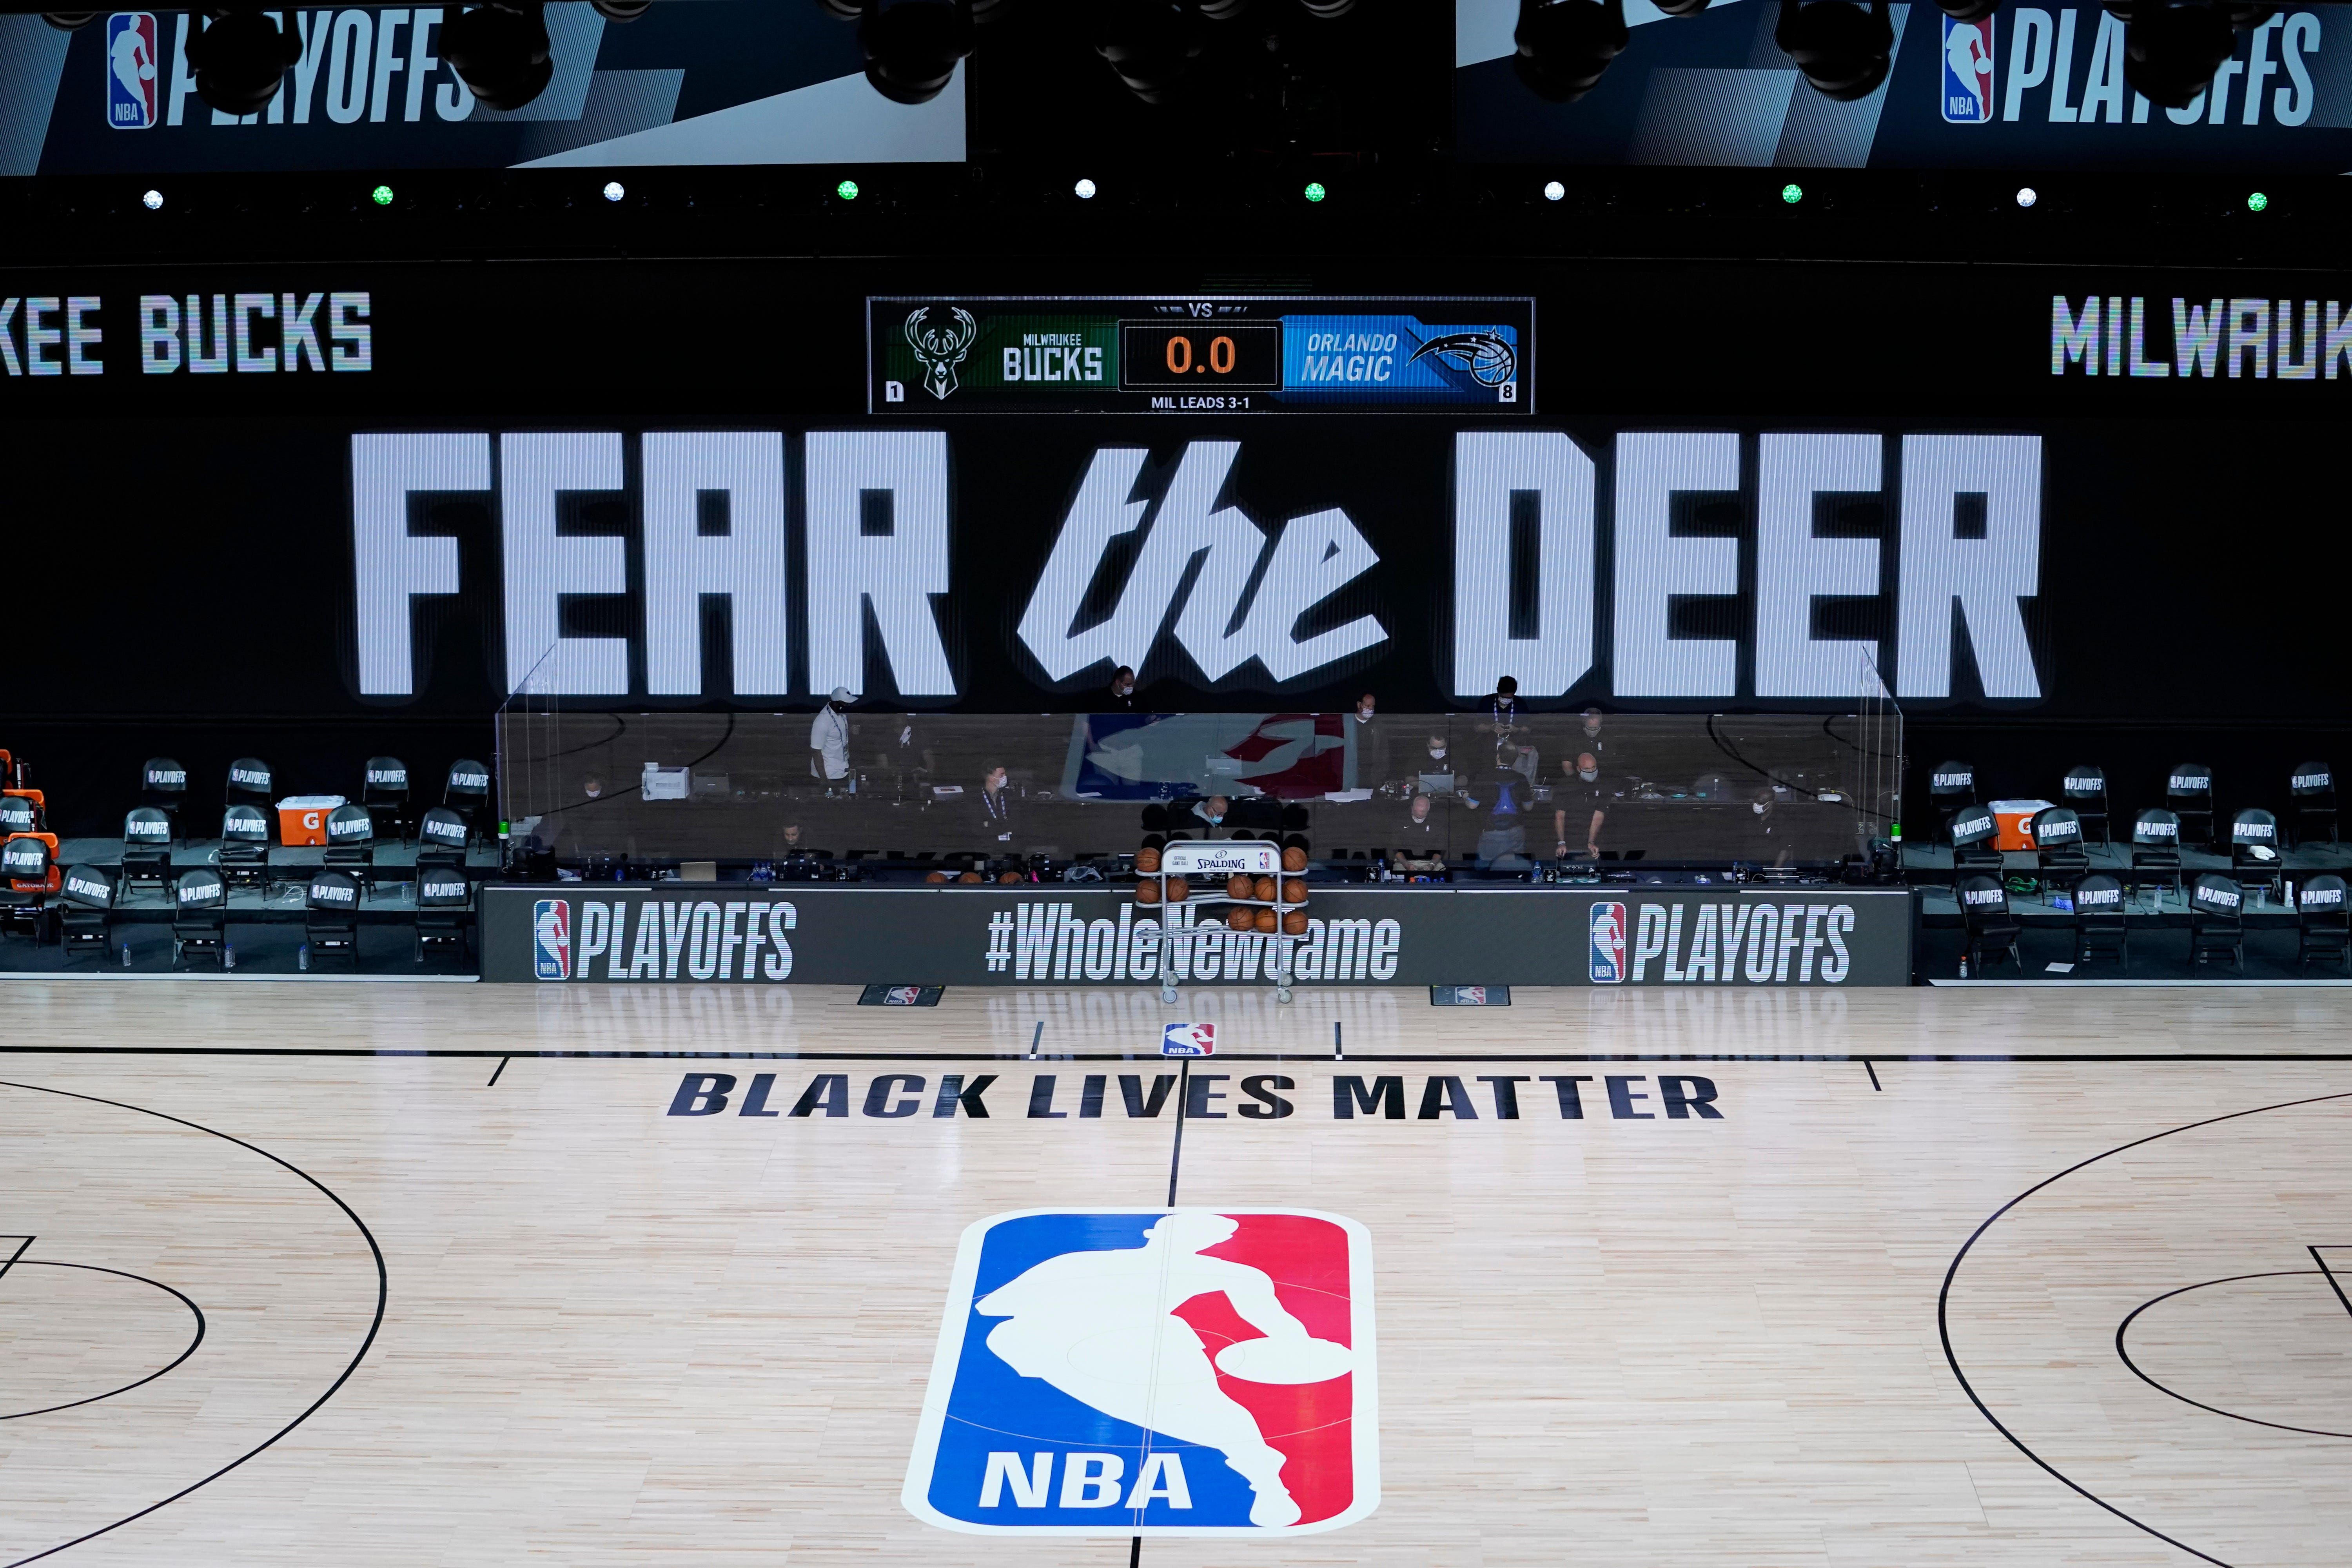 Milwaukee Bucks Do Not Take Floor For Nba Playoff Game As They Protest Police Shooting Of Jacob Blake Milwaukee Bucks Nba Playoffs Playoffs